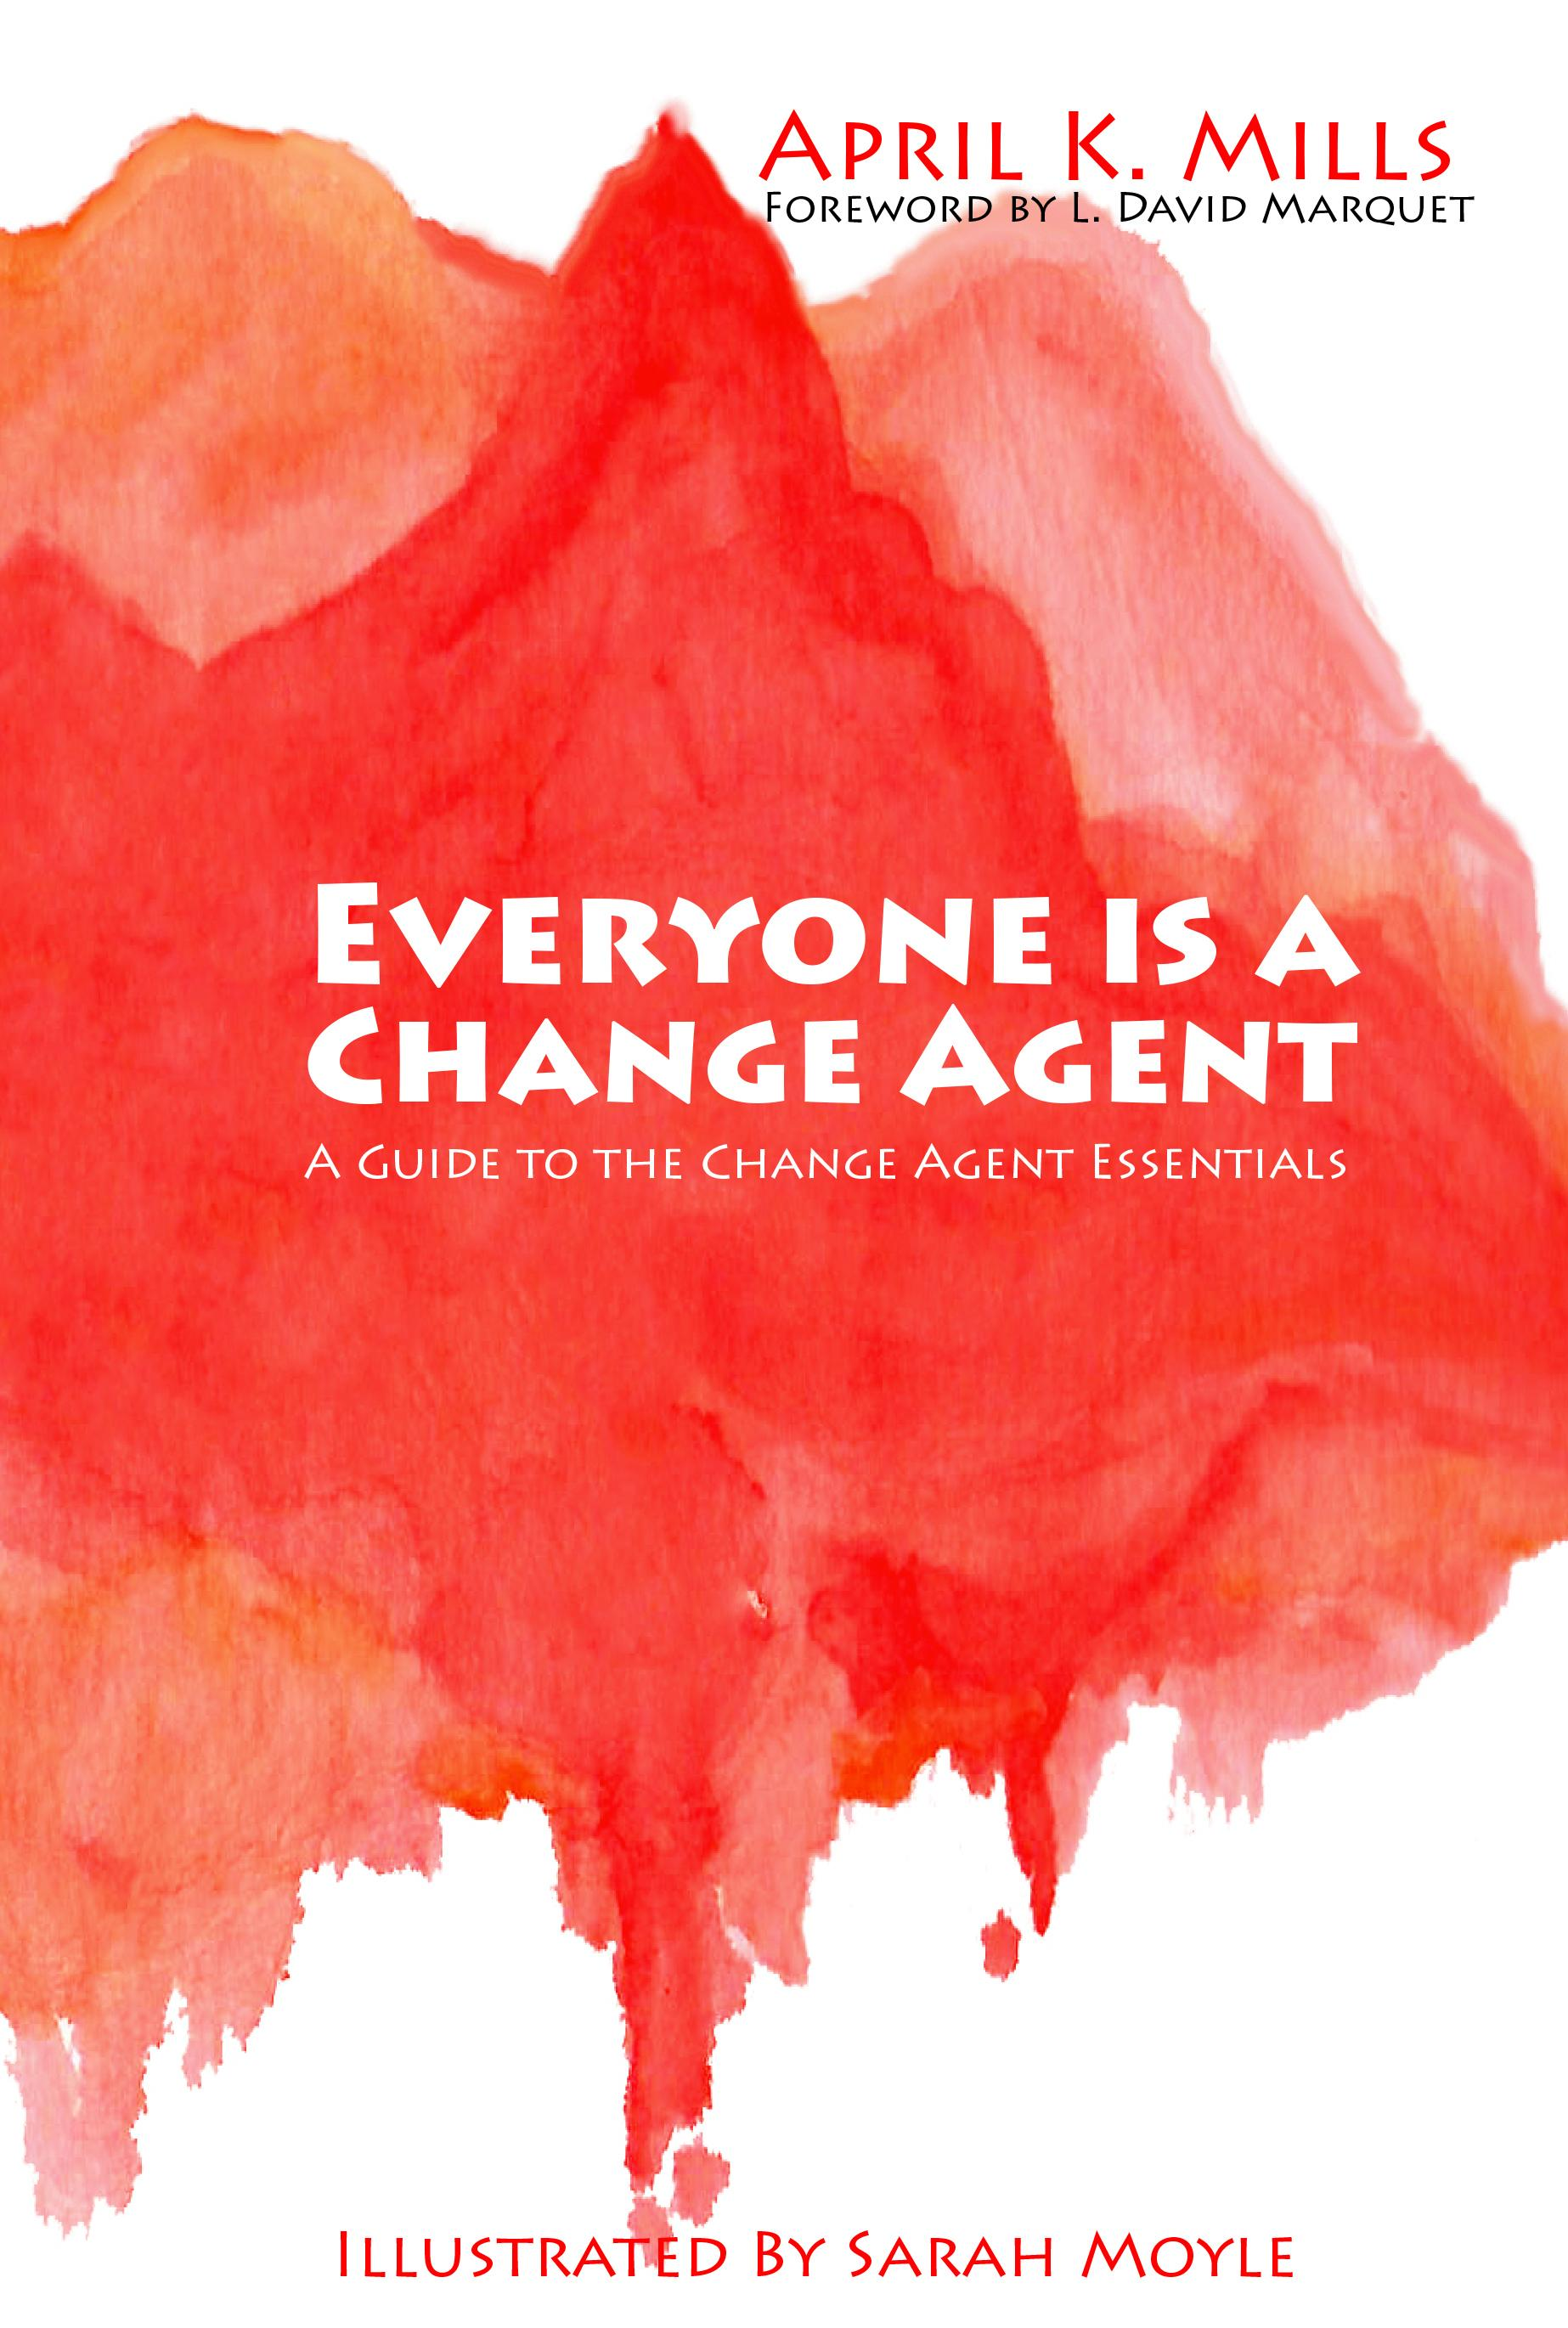 Everyone is a Change Agent by April K. Mills, ISBN: 9781370409419